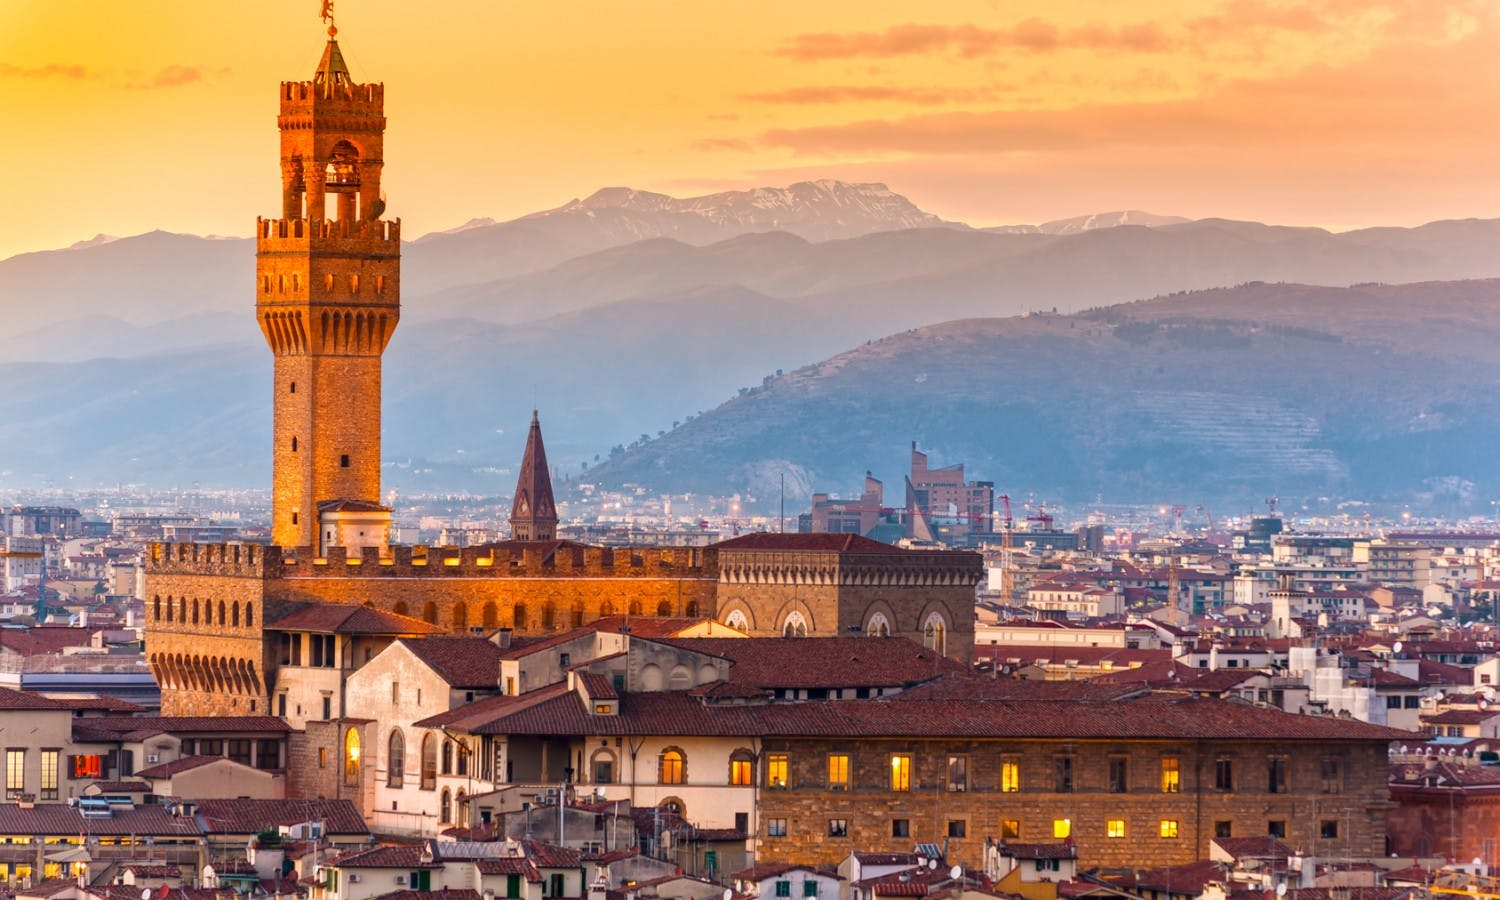 Florence Afternoon Tour with Uffizi Gallery: Skip the Line Tickets and Guided Visit